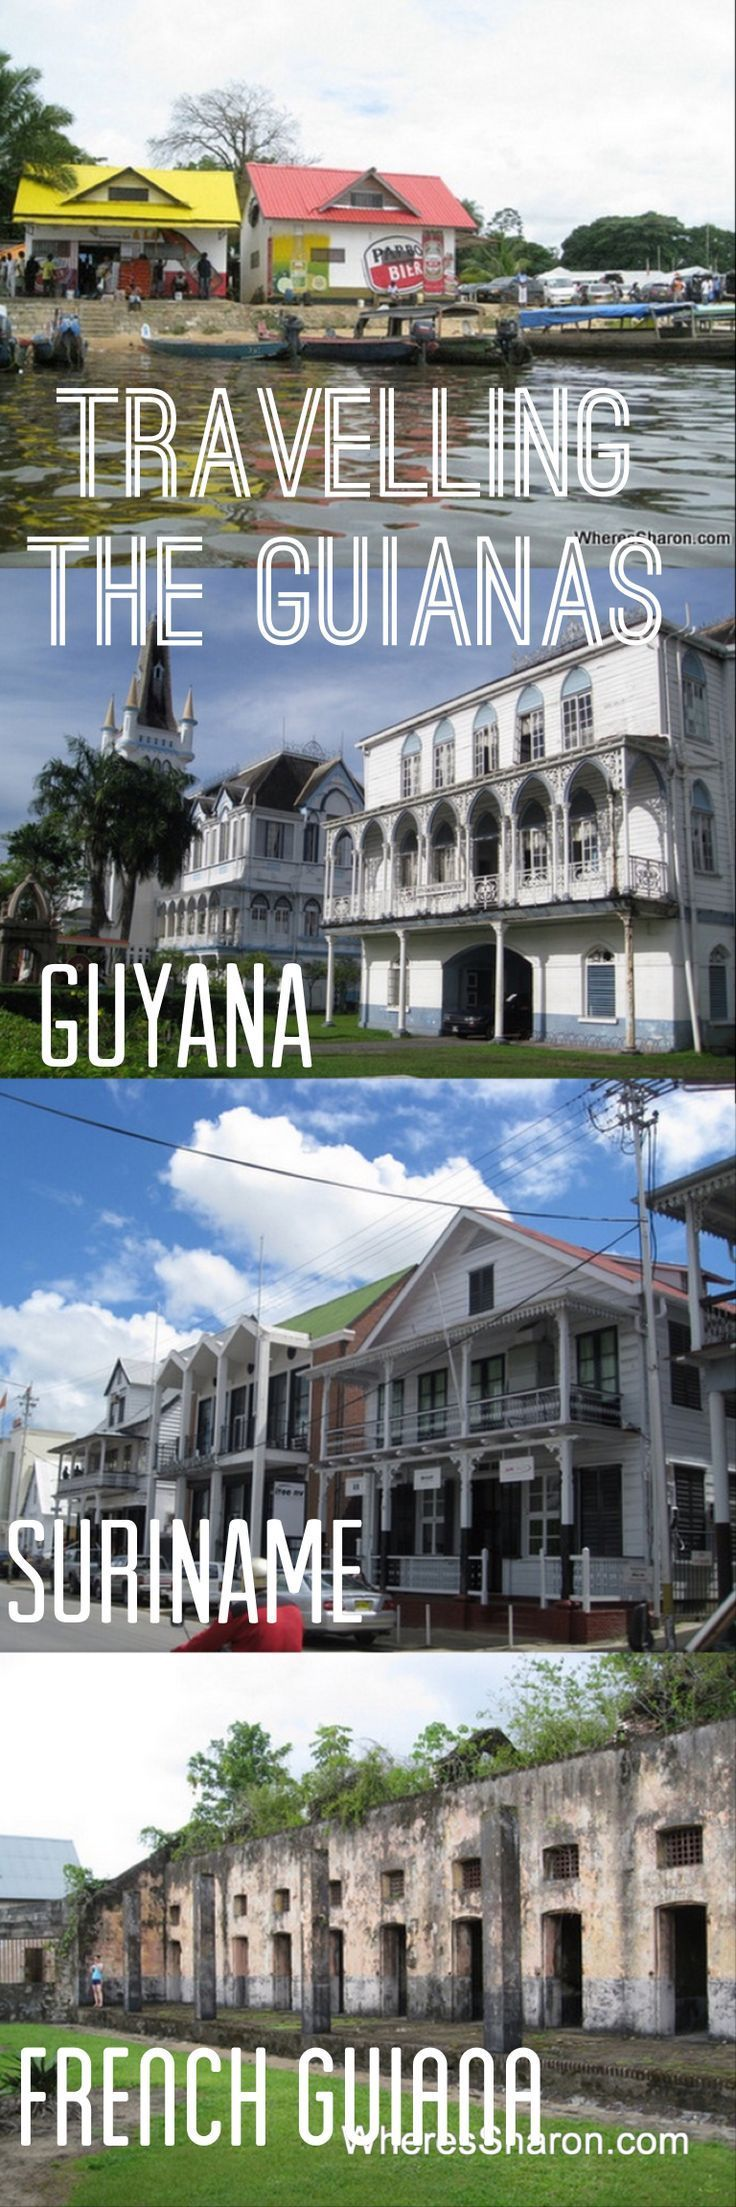 Off The Beaten Track Travelling Through The Guianas Part 1 Family Travel Blog Travel With Kids Caribbean Travel South America Travel America Travel